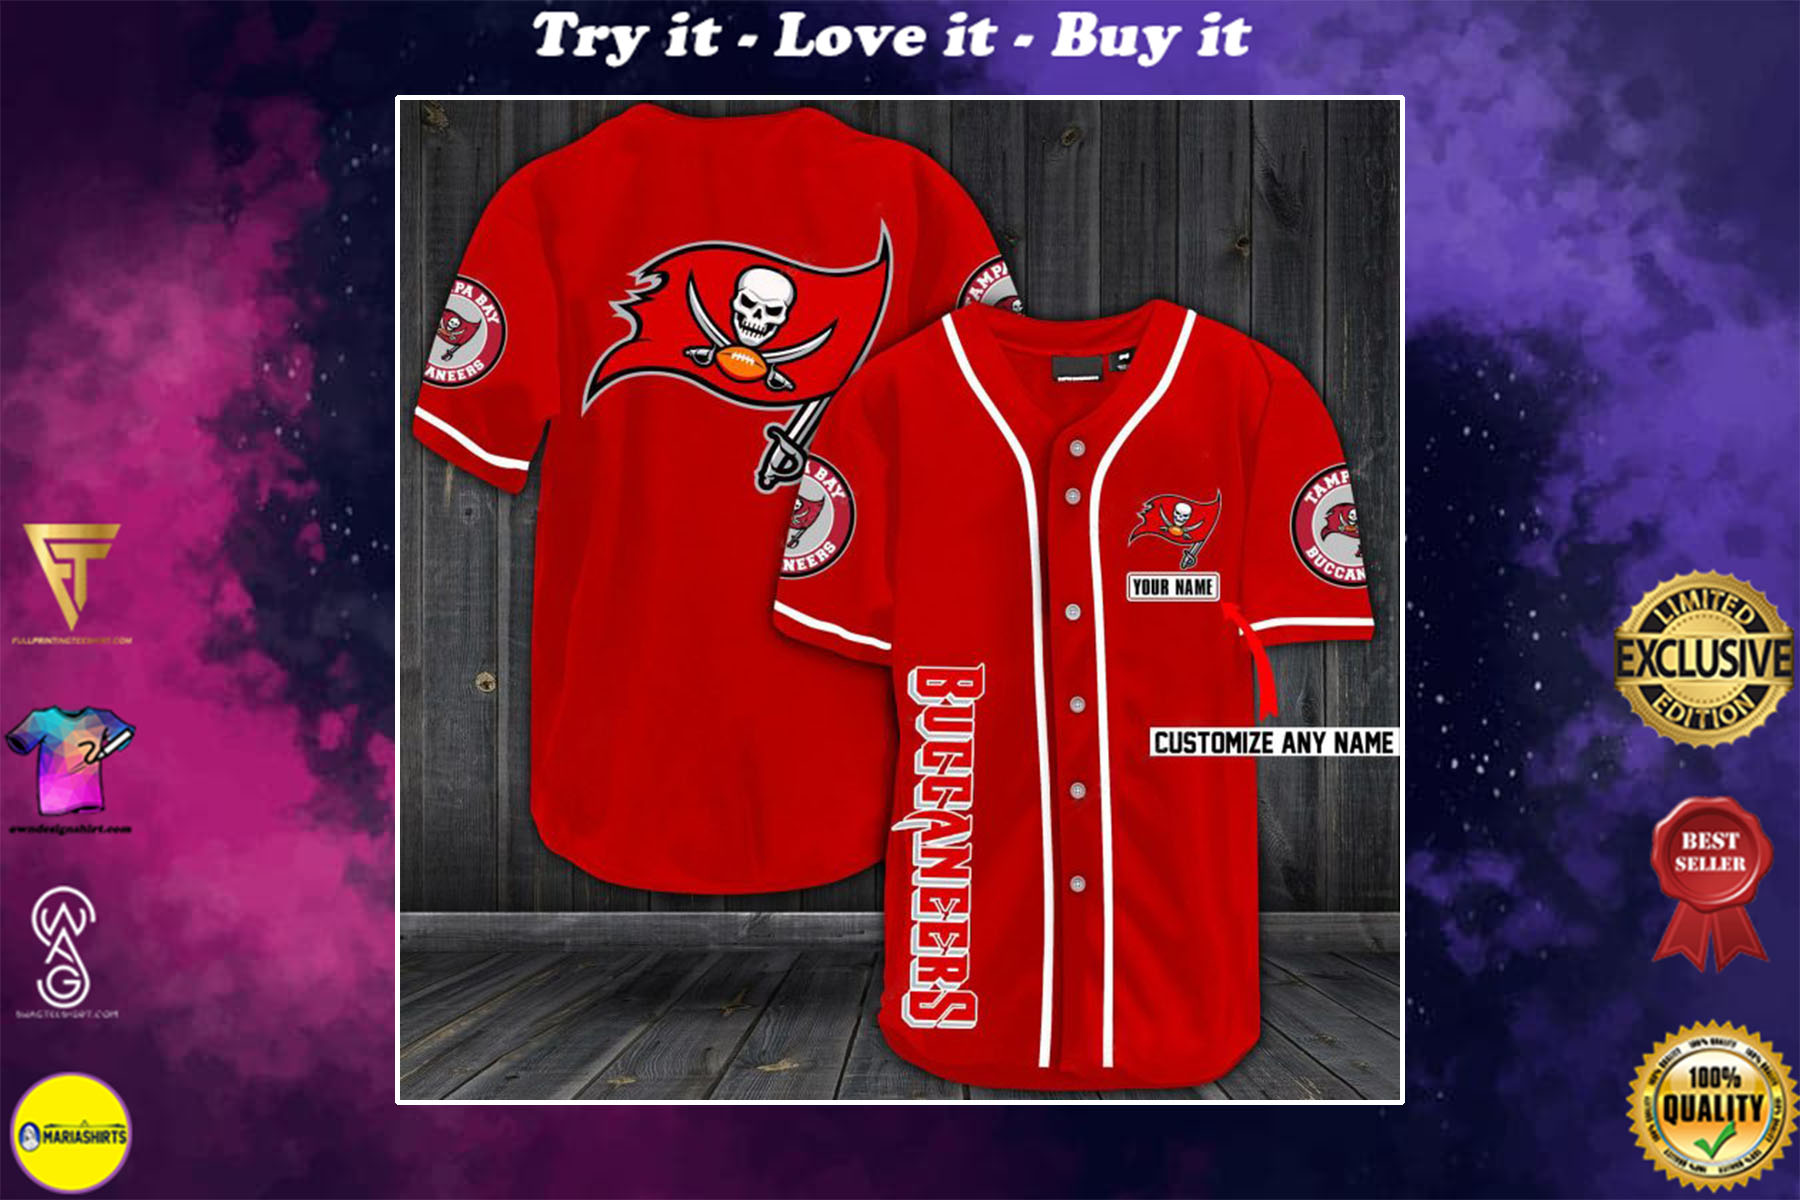 personalized name tampa bay buccaneers baseball shirt - maria